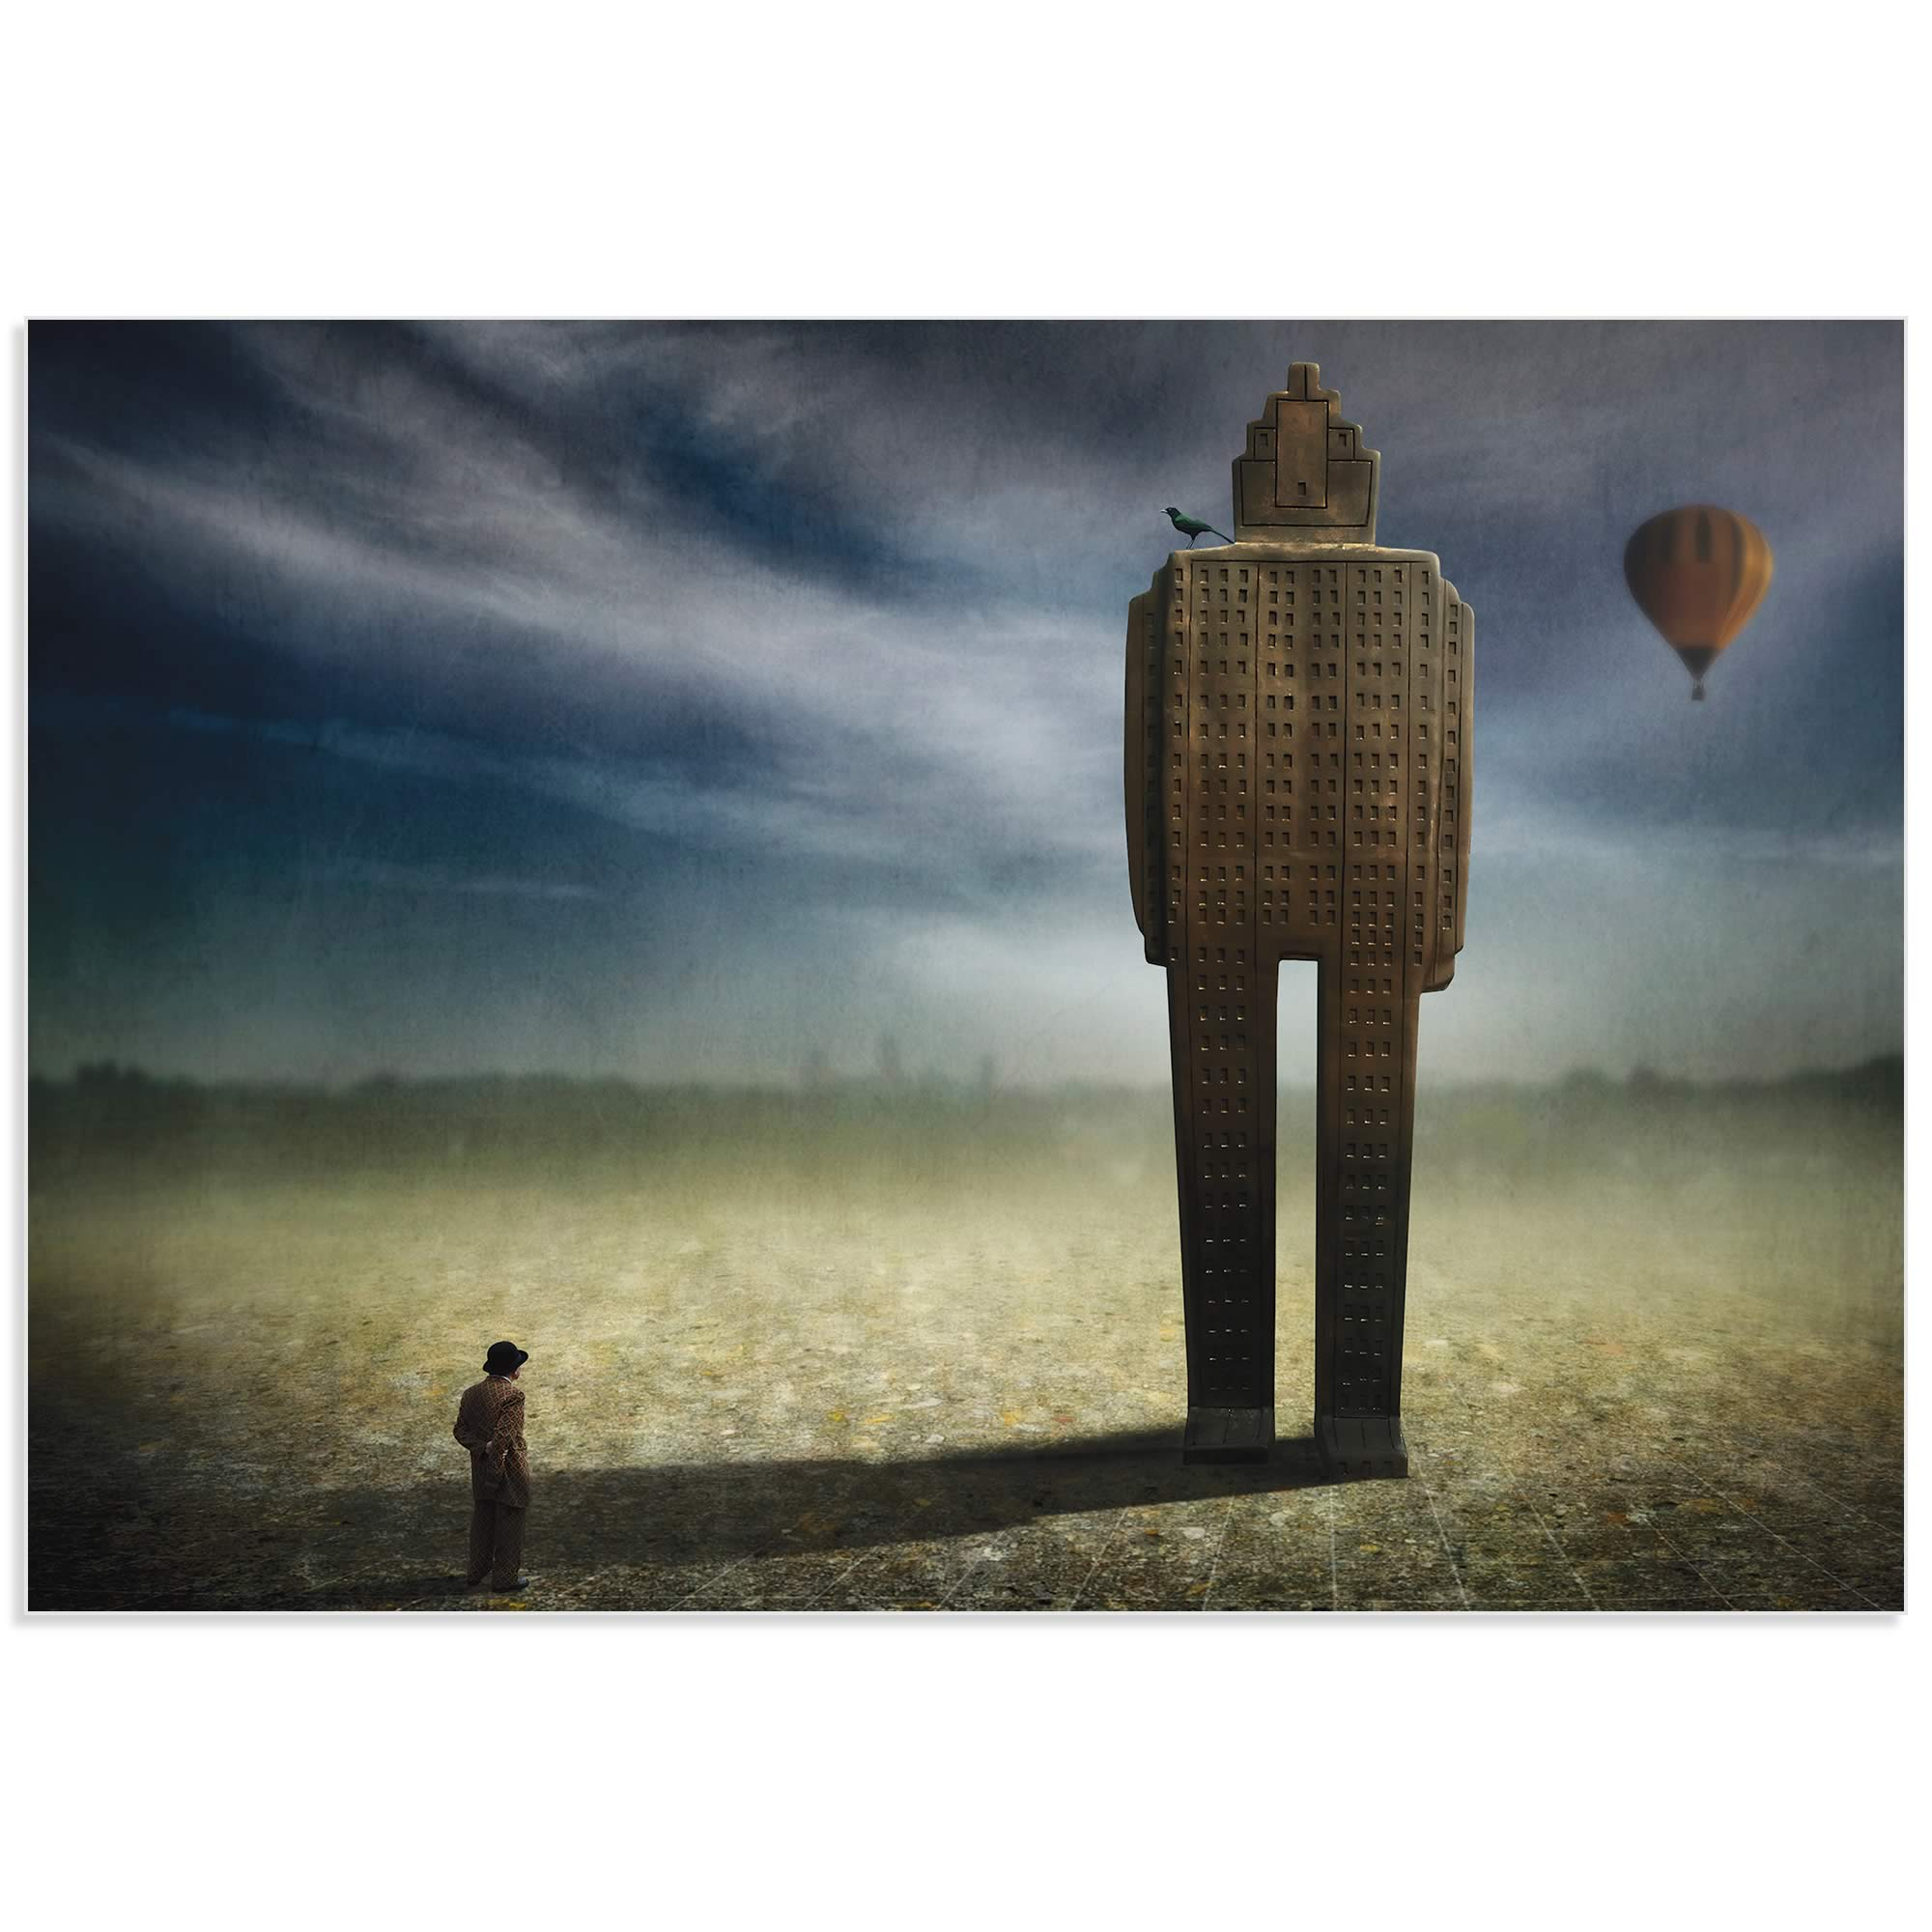 Big Town Exodus by Ben Goossens - Surreal Cityscape Art on Metal or Acrylic - Alternate View 2